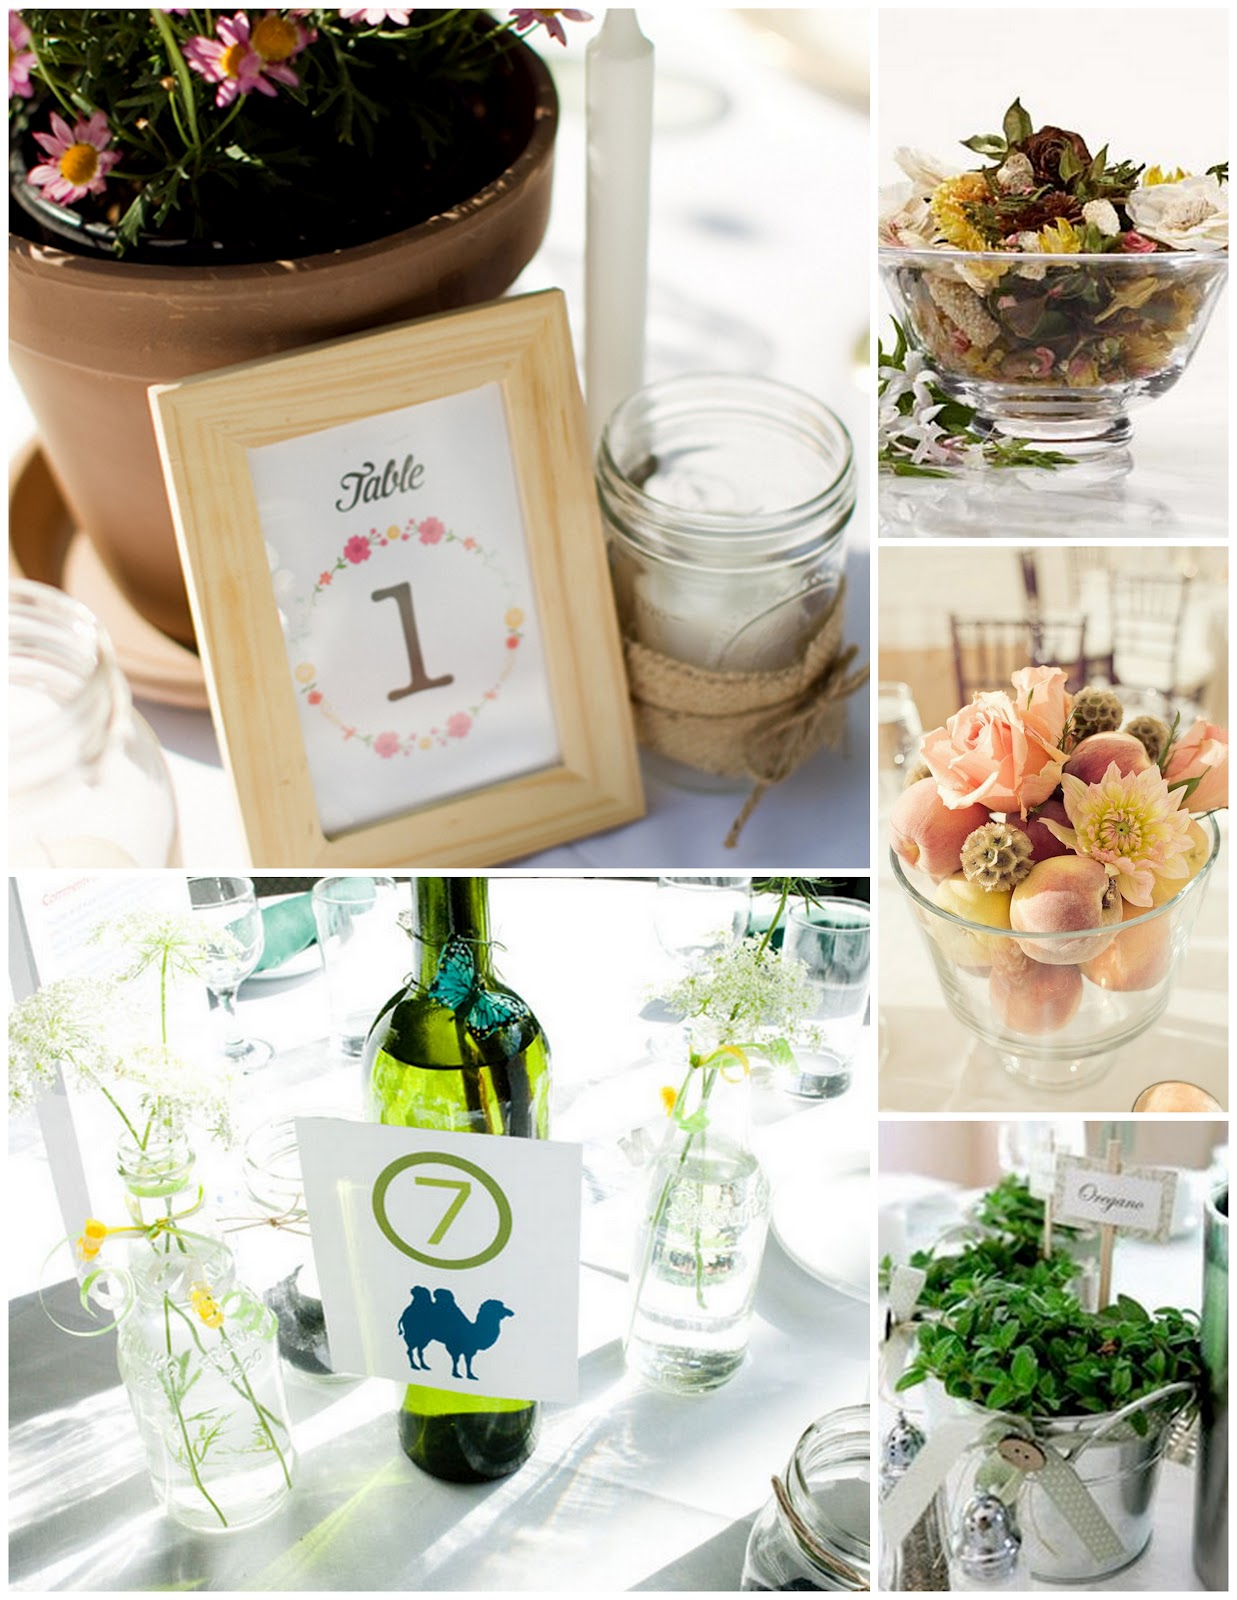 Blue Mason Jar Studio: {Bright Idea Thursday} Non-Flower Centerpieces